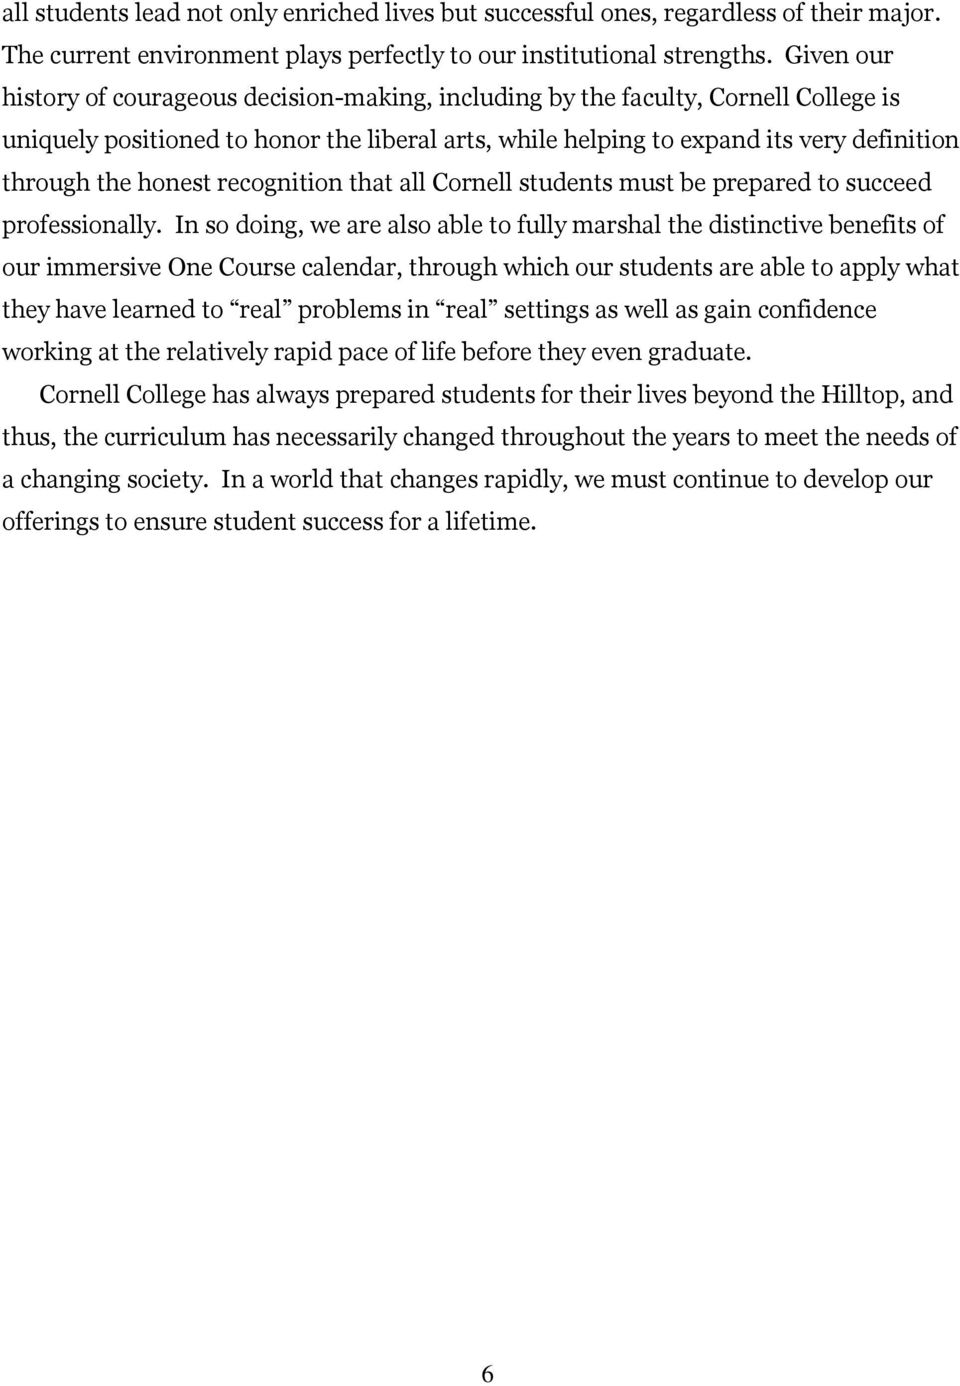 honest recognition that all Cornell students must be prepared to succeed professionally.